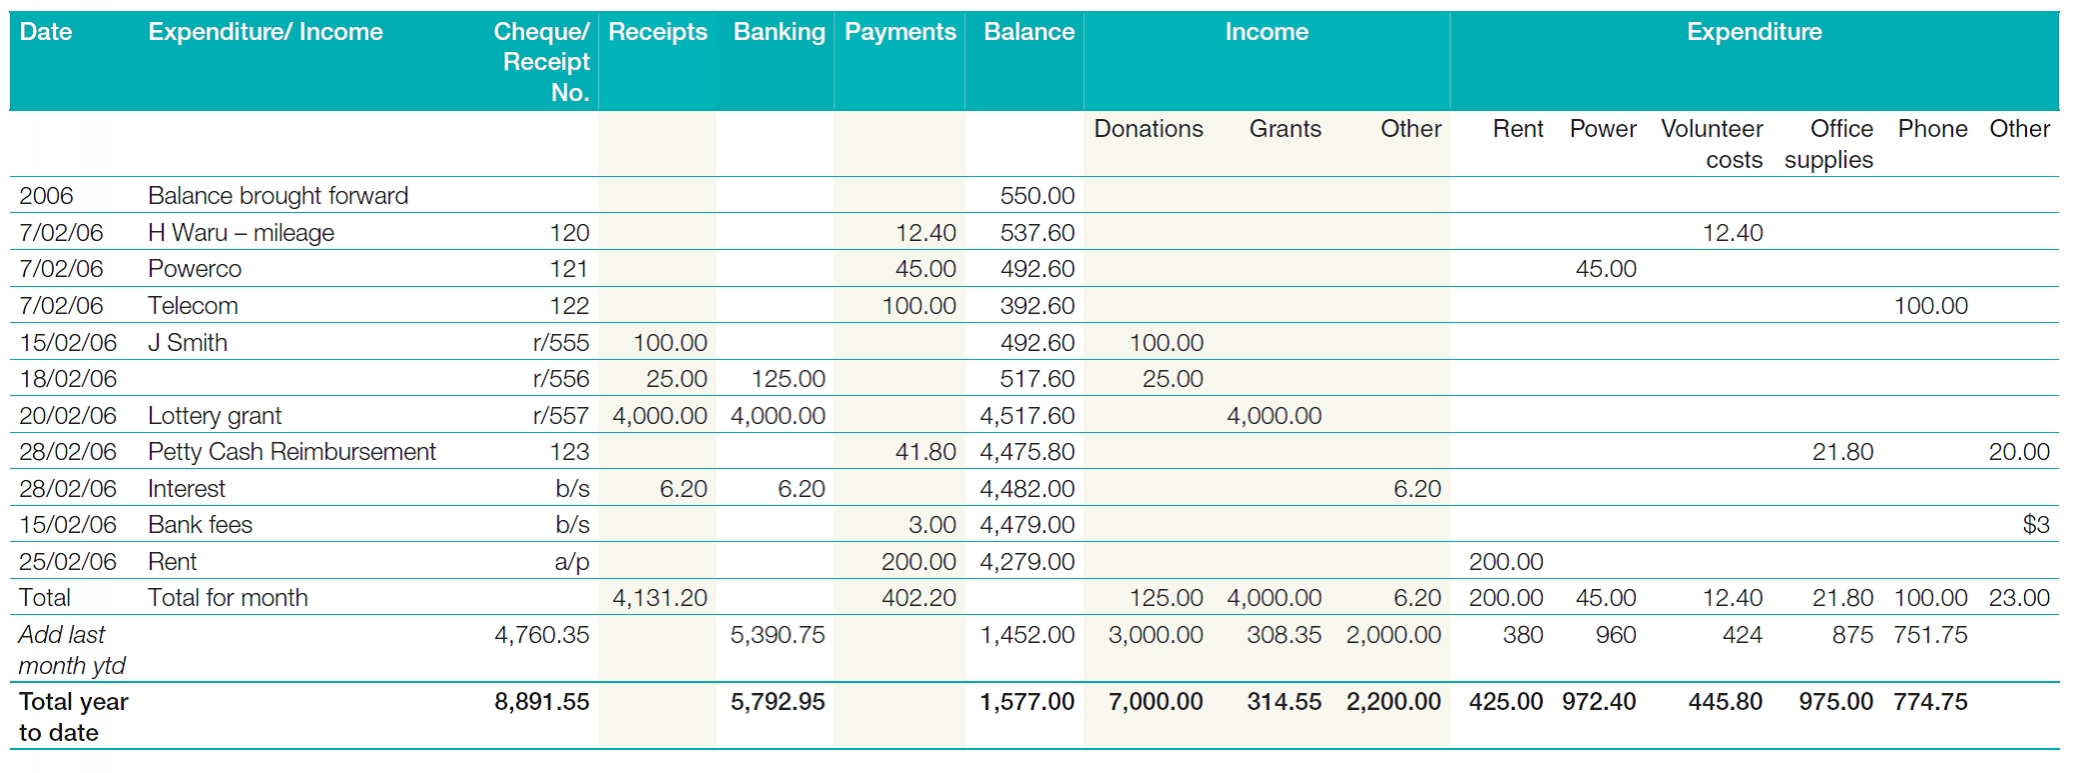 communitynet aotearoa computerised accounting systems tax invoice not registered for gst